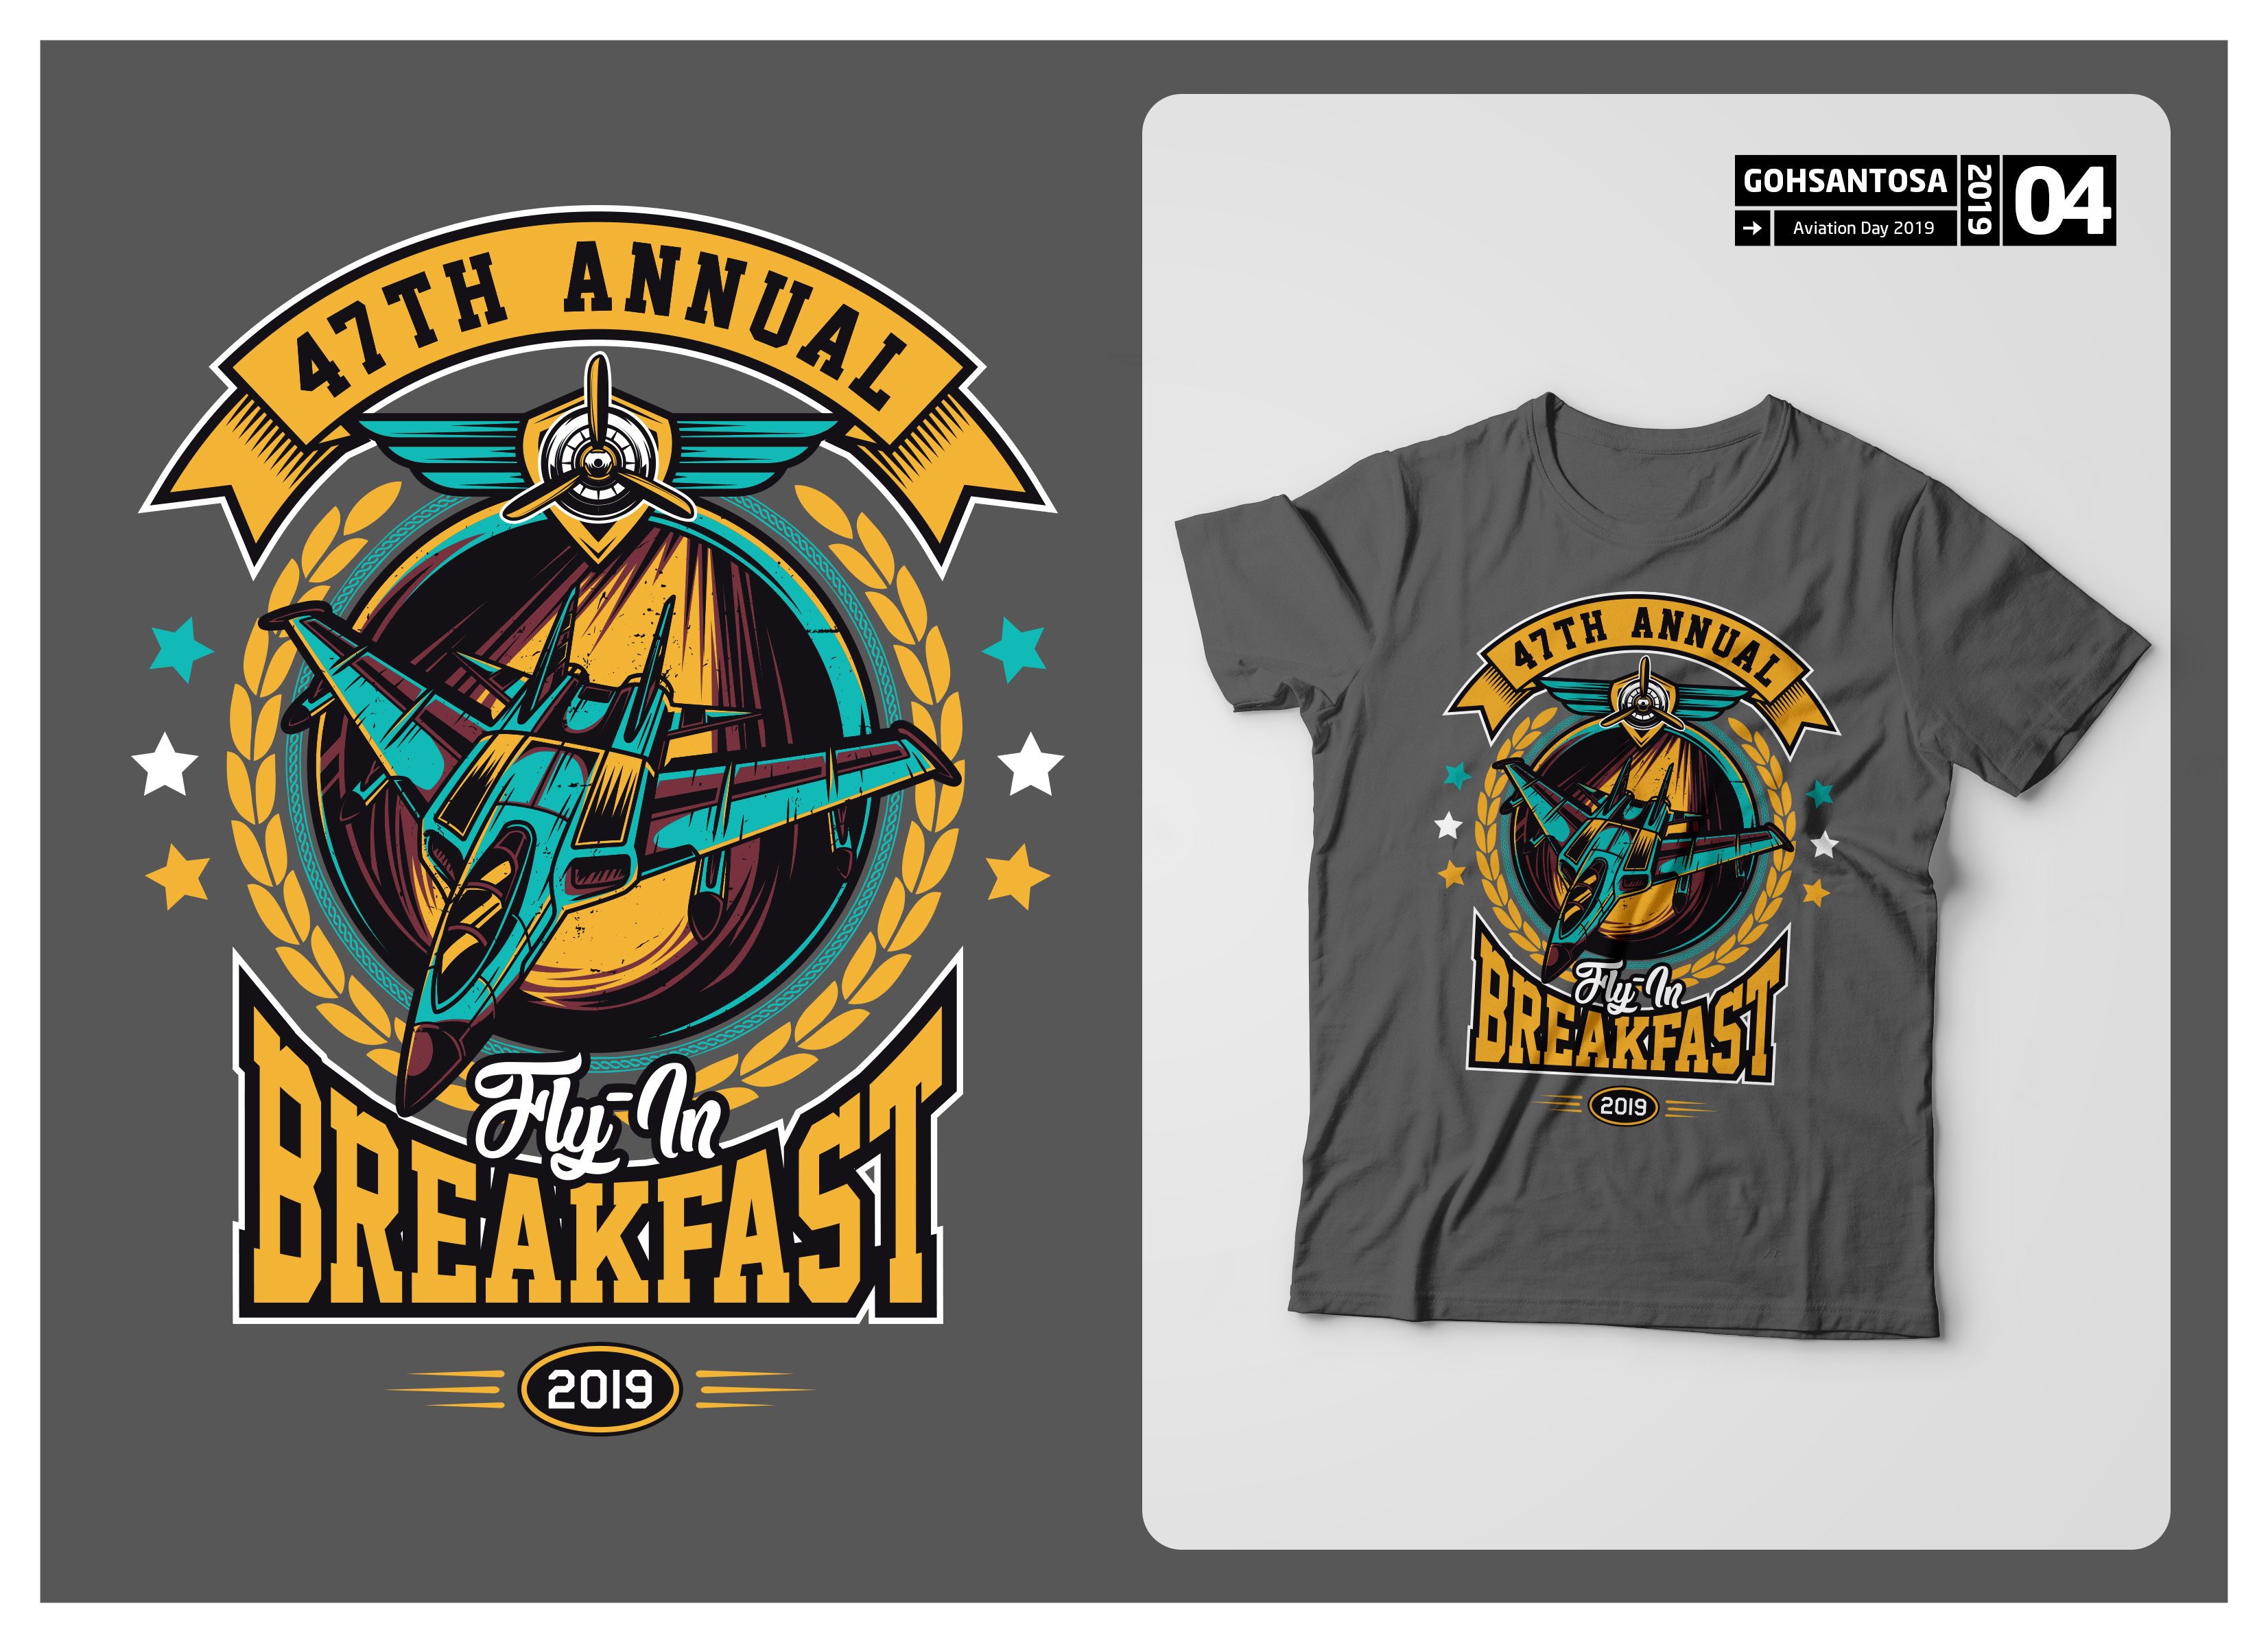 T-shirt Design for EAA Chapter 1227 by Gohsantosa | Design #22052794